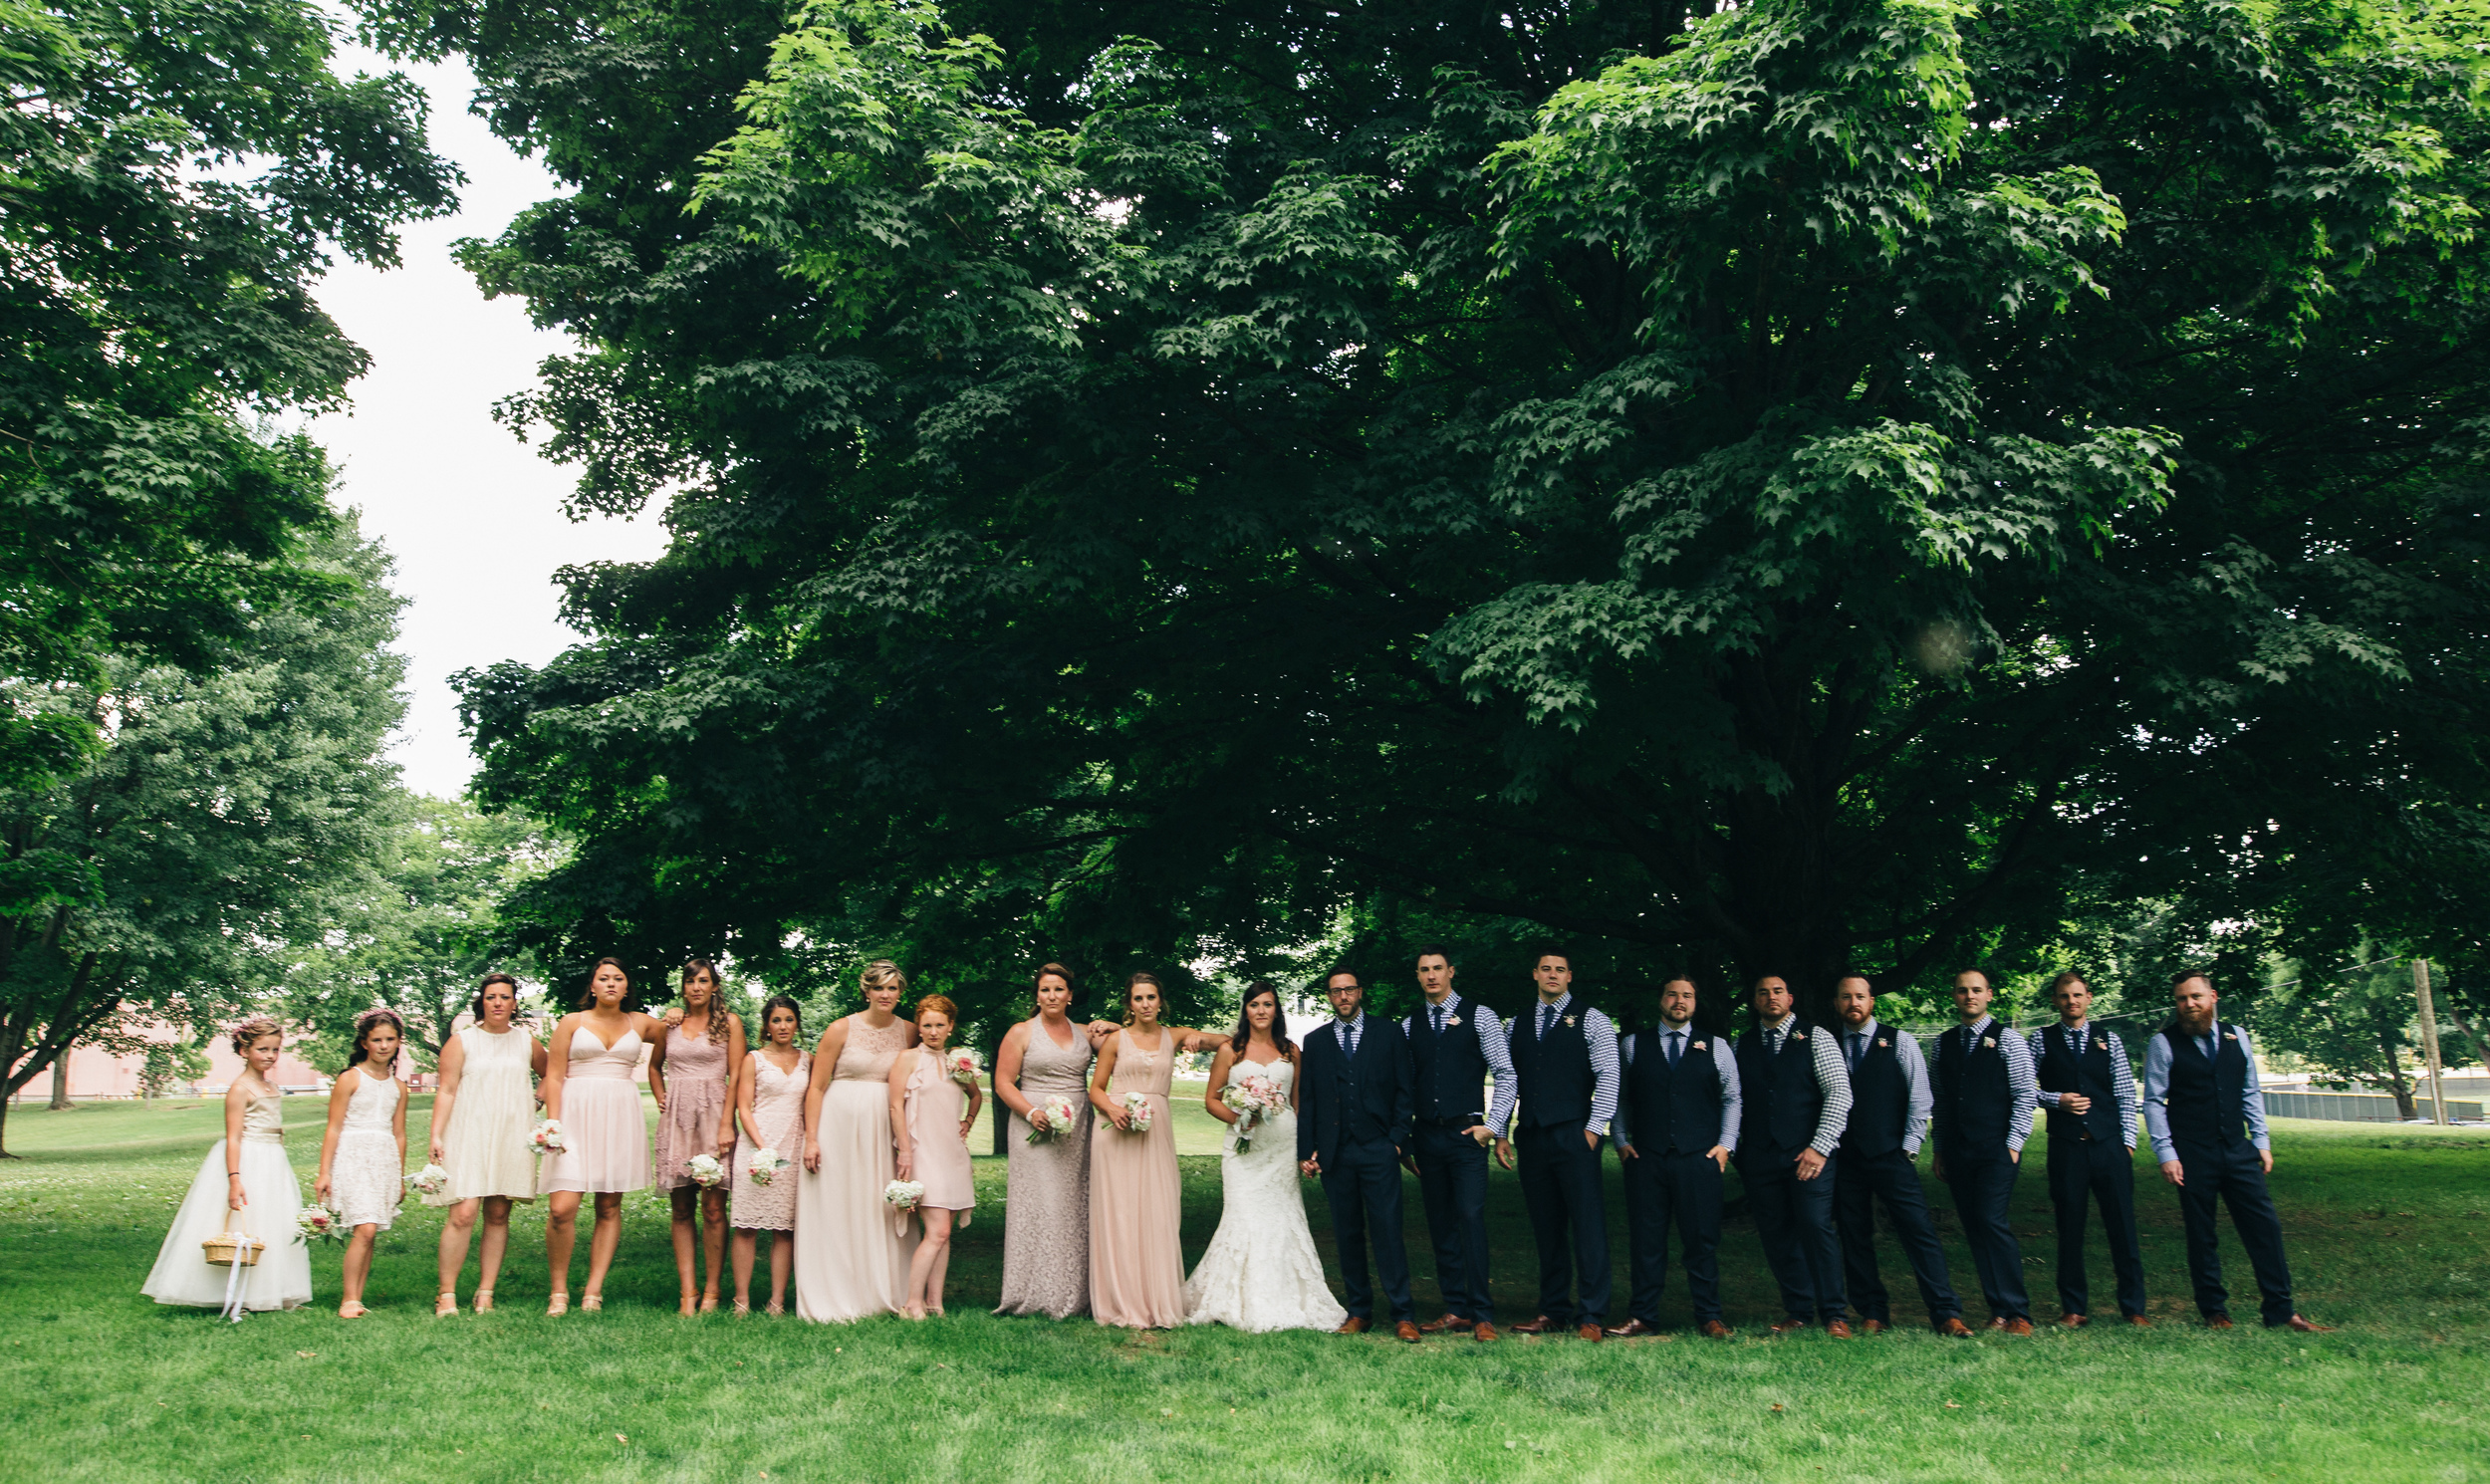 Large bridal party wedding photography at Walsh University in Canton, Ohio.